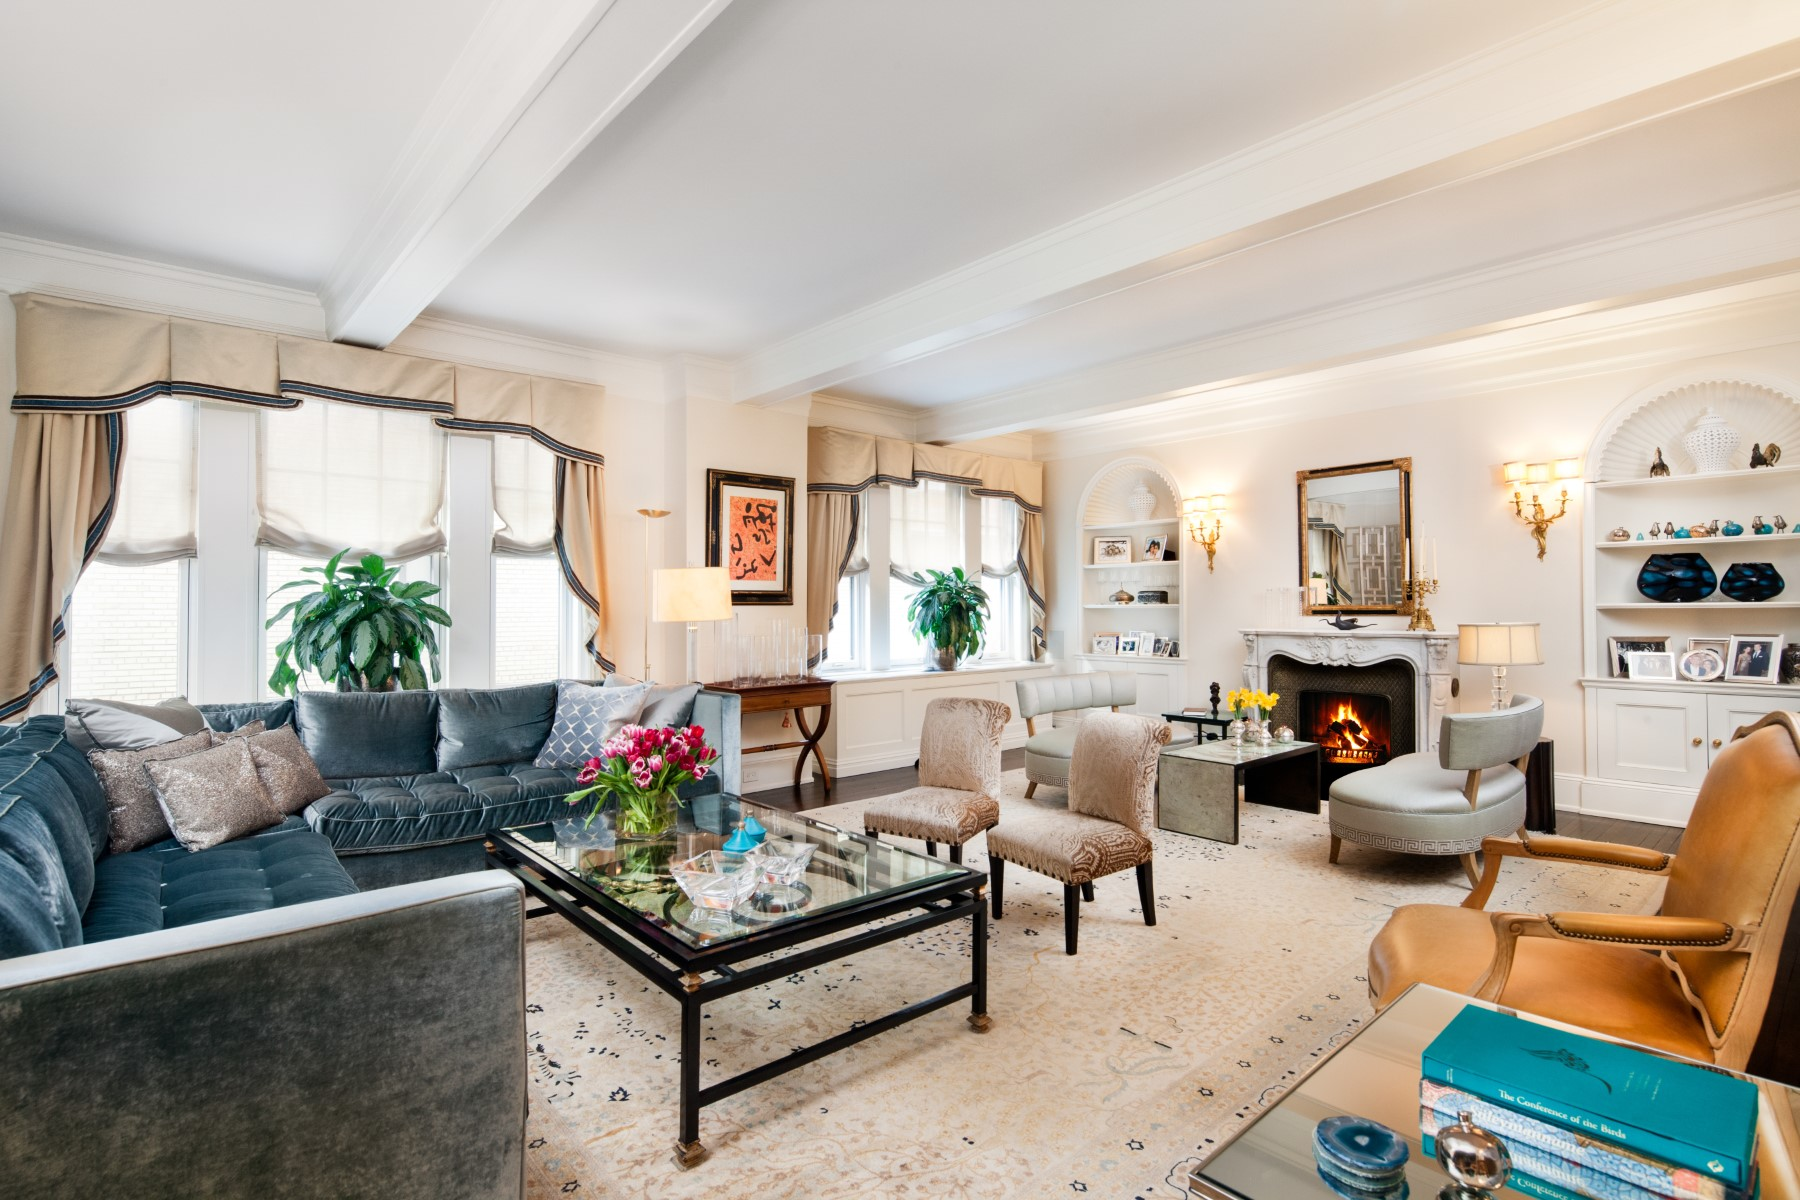 Condominium for Sale at Charming, Chic and Cheery 444 East 57th Street Apt 12f Midtown East, New York, New York 10022 United States